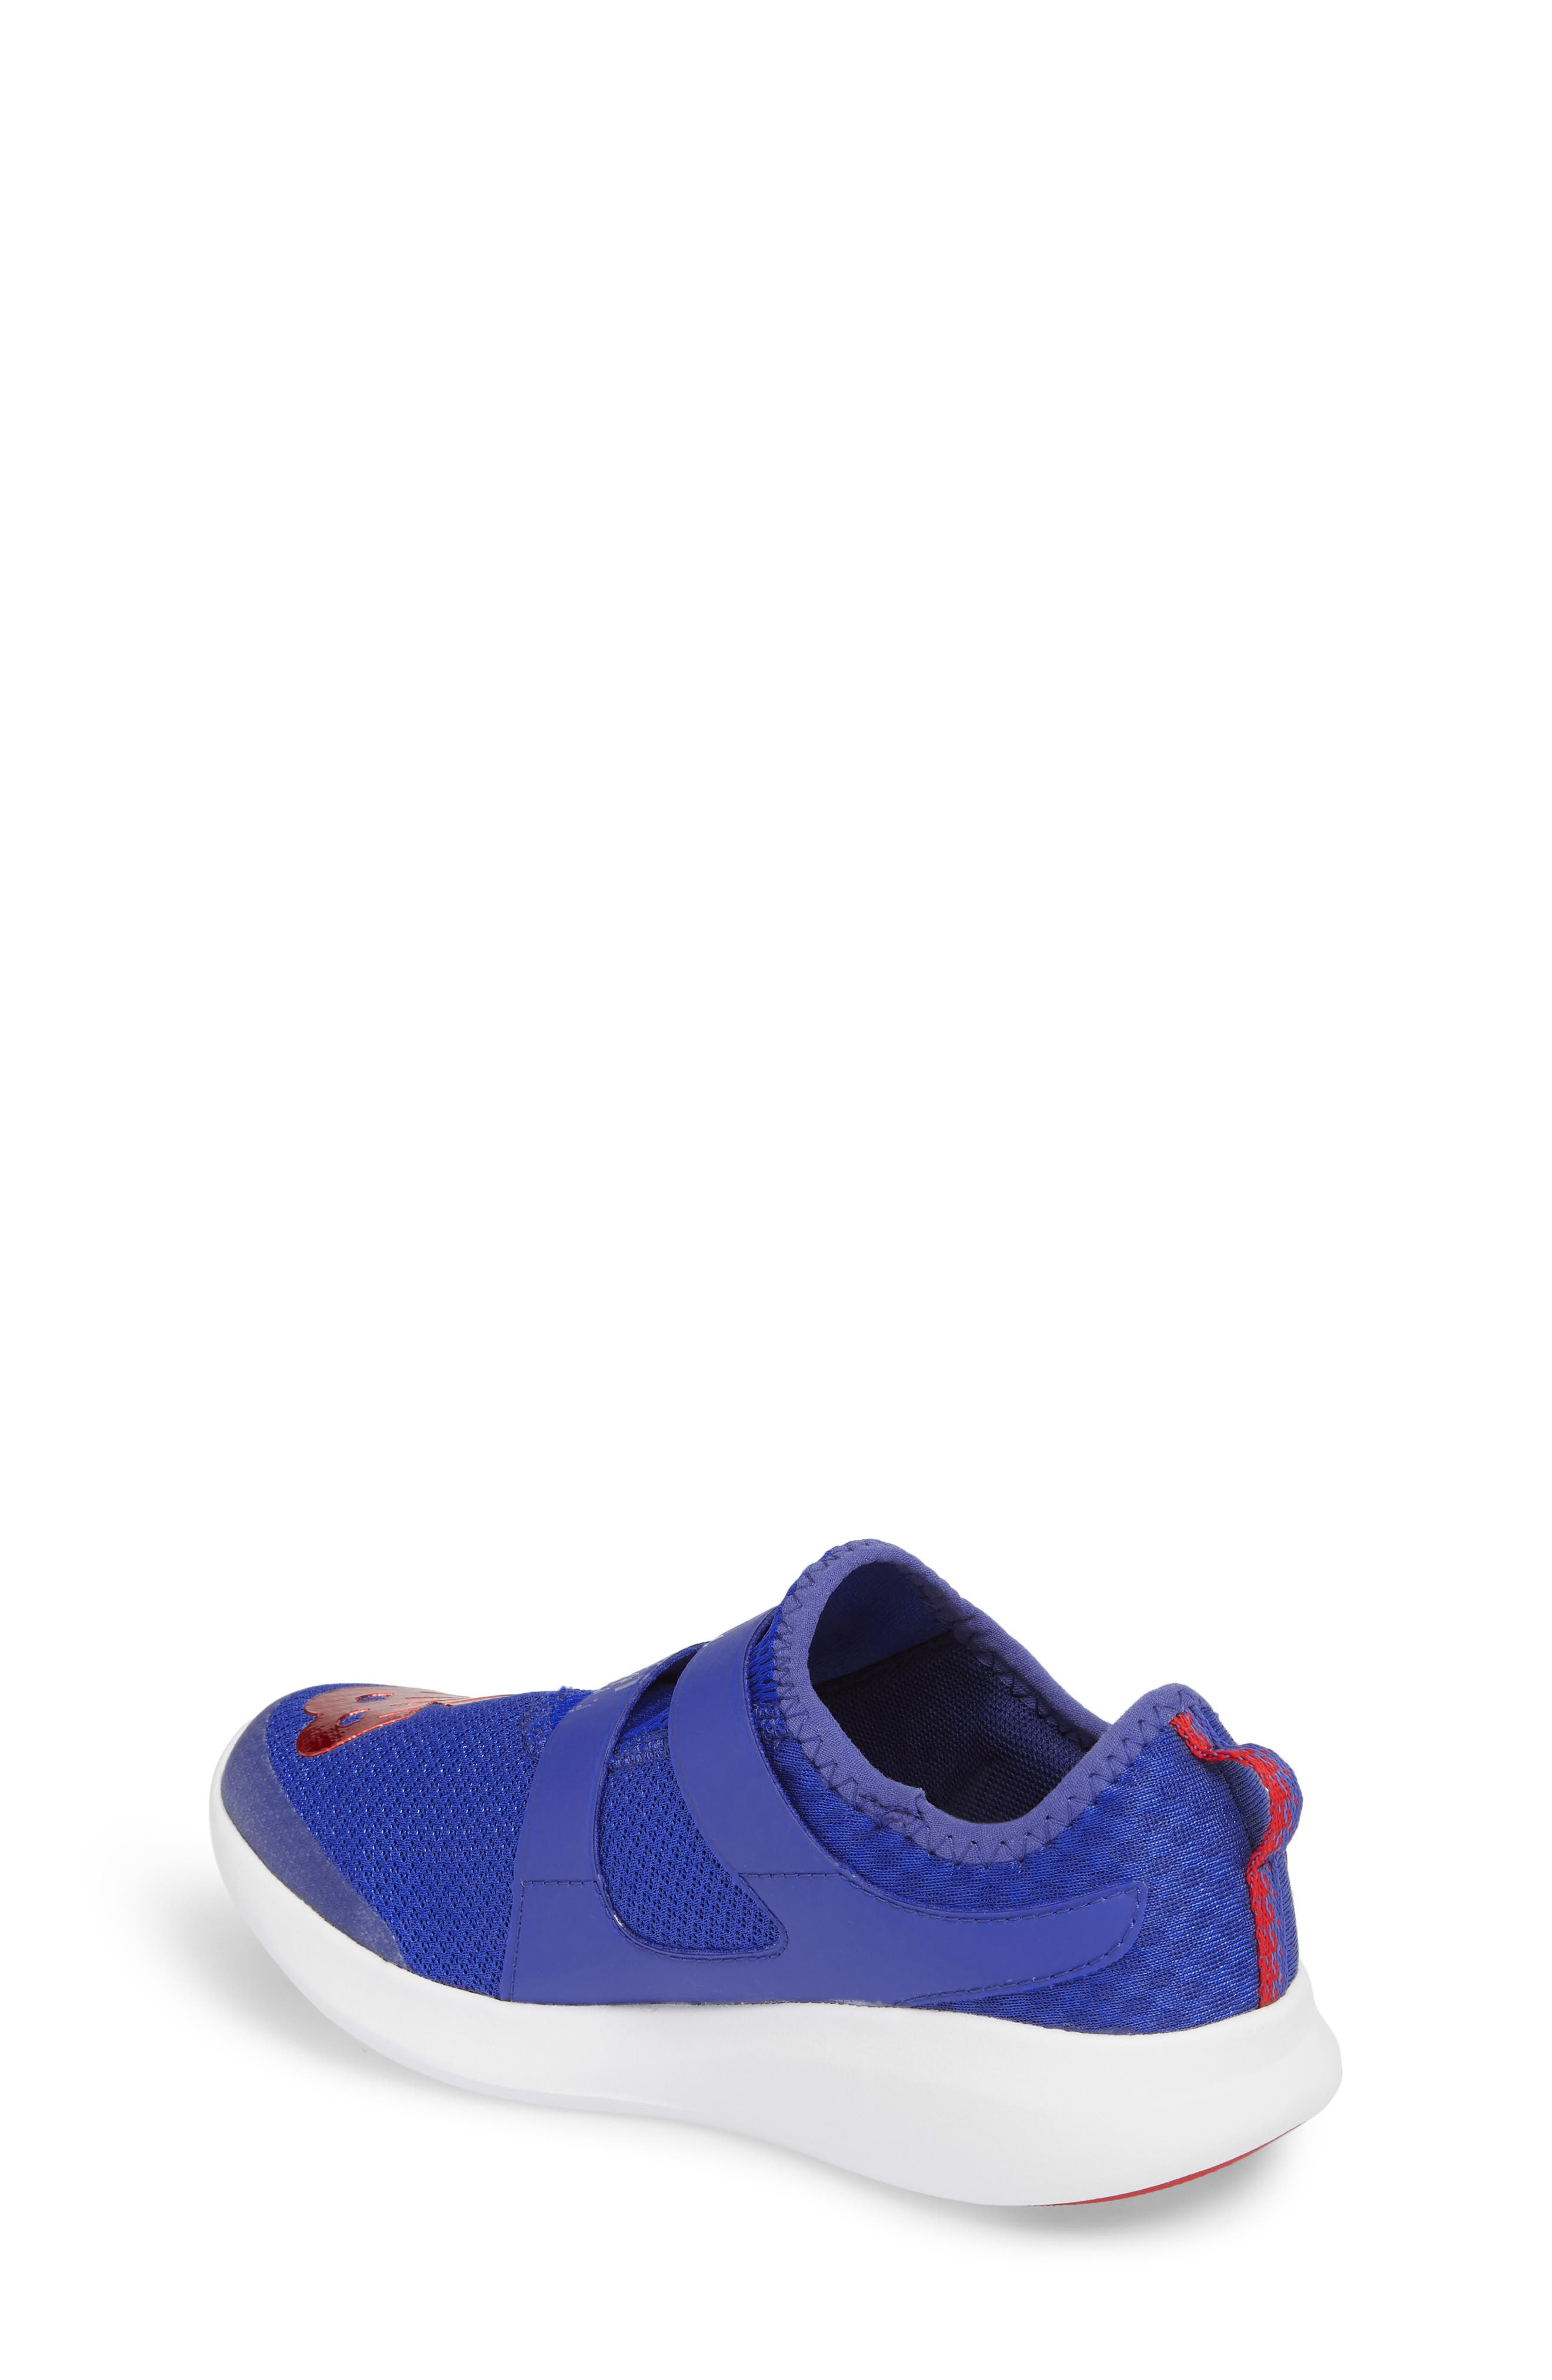 BKO Running Shoe,                             Alternate thumbnail 6, color,